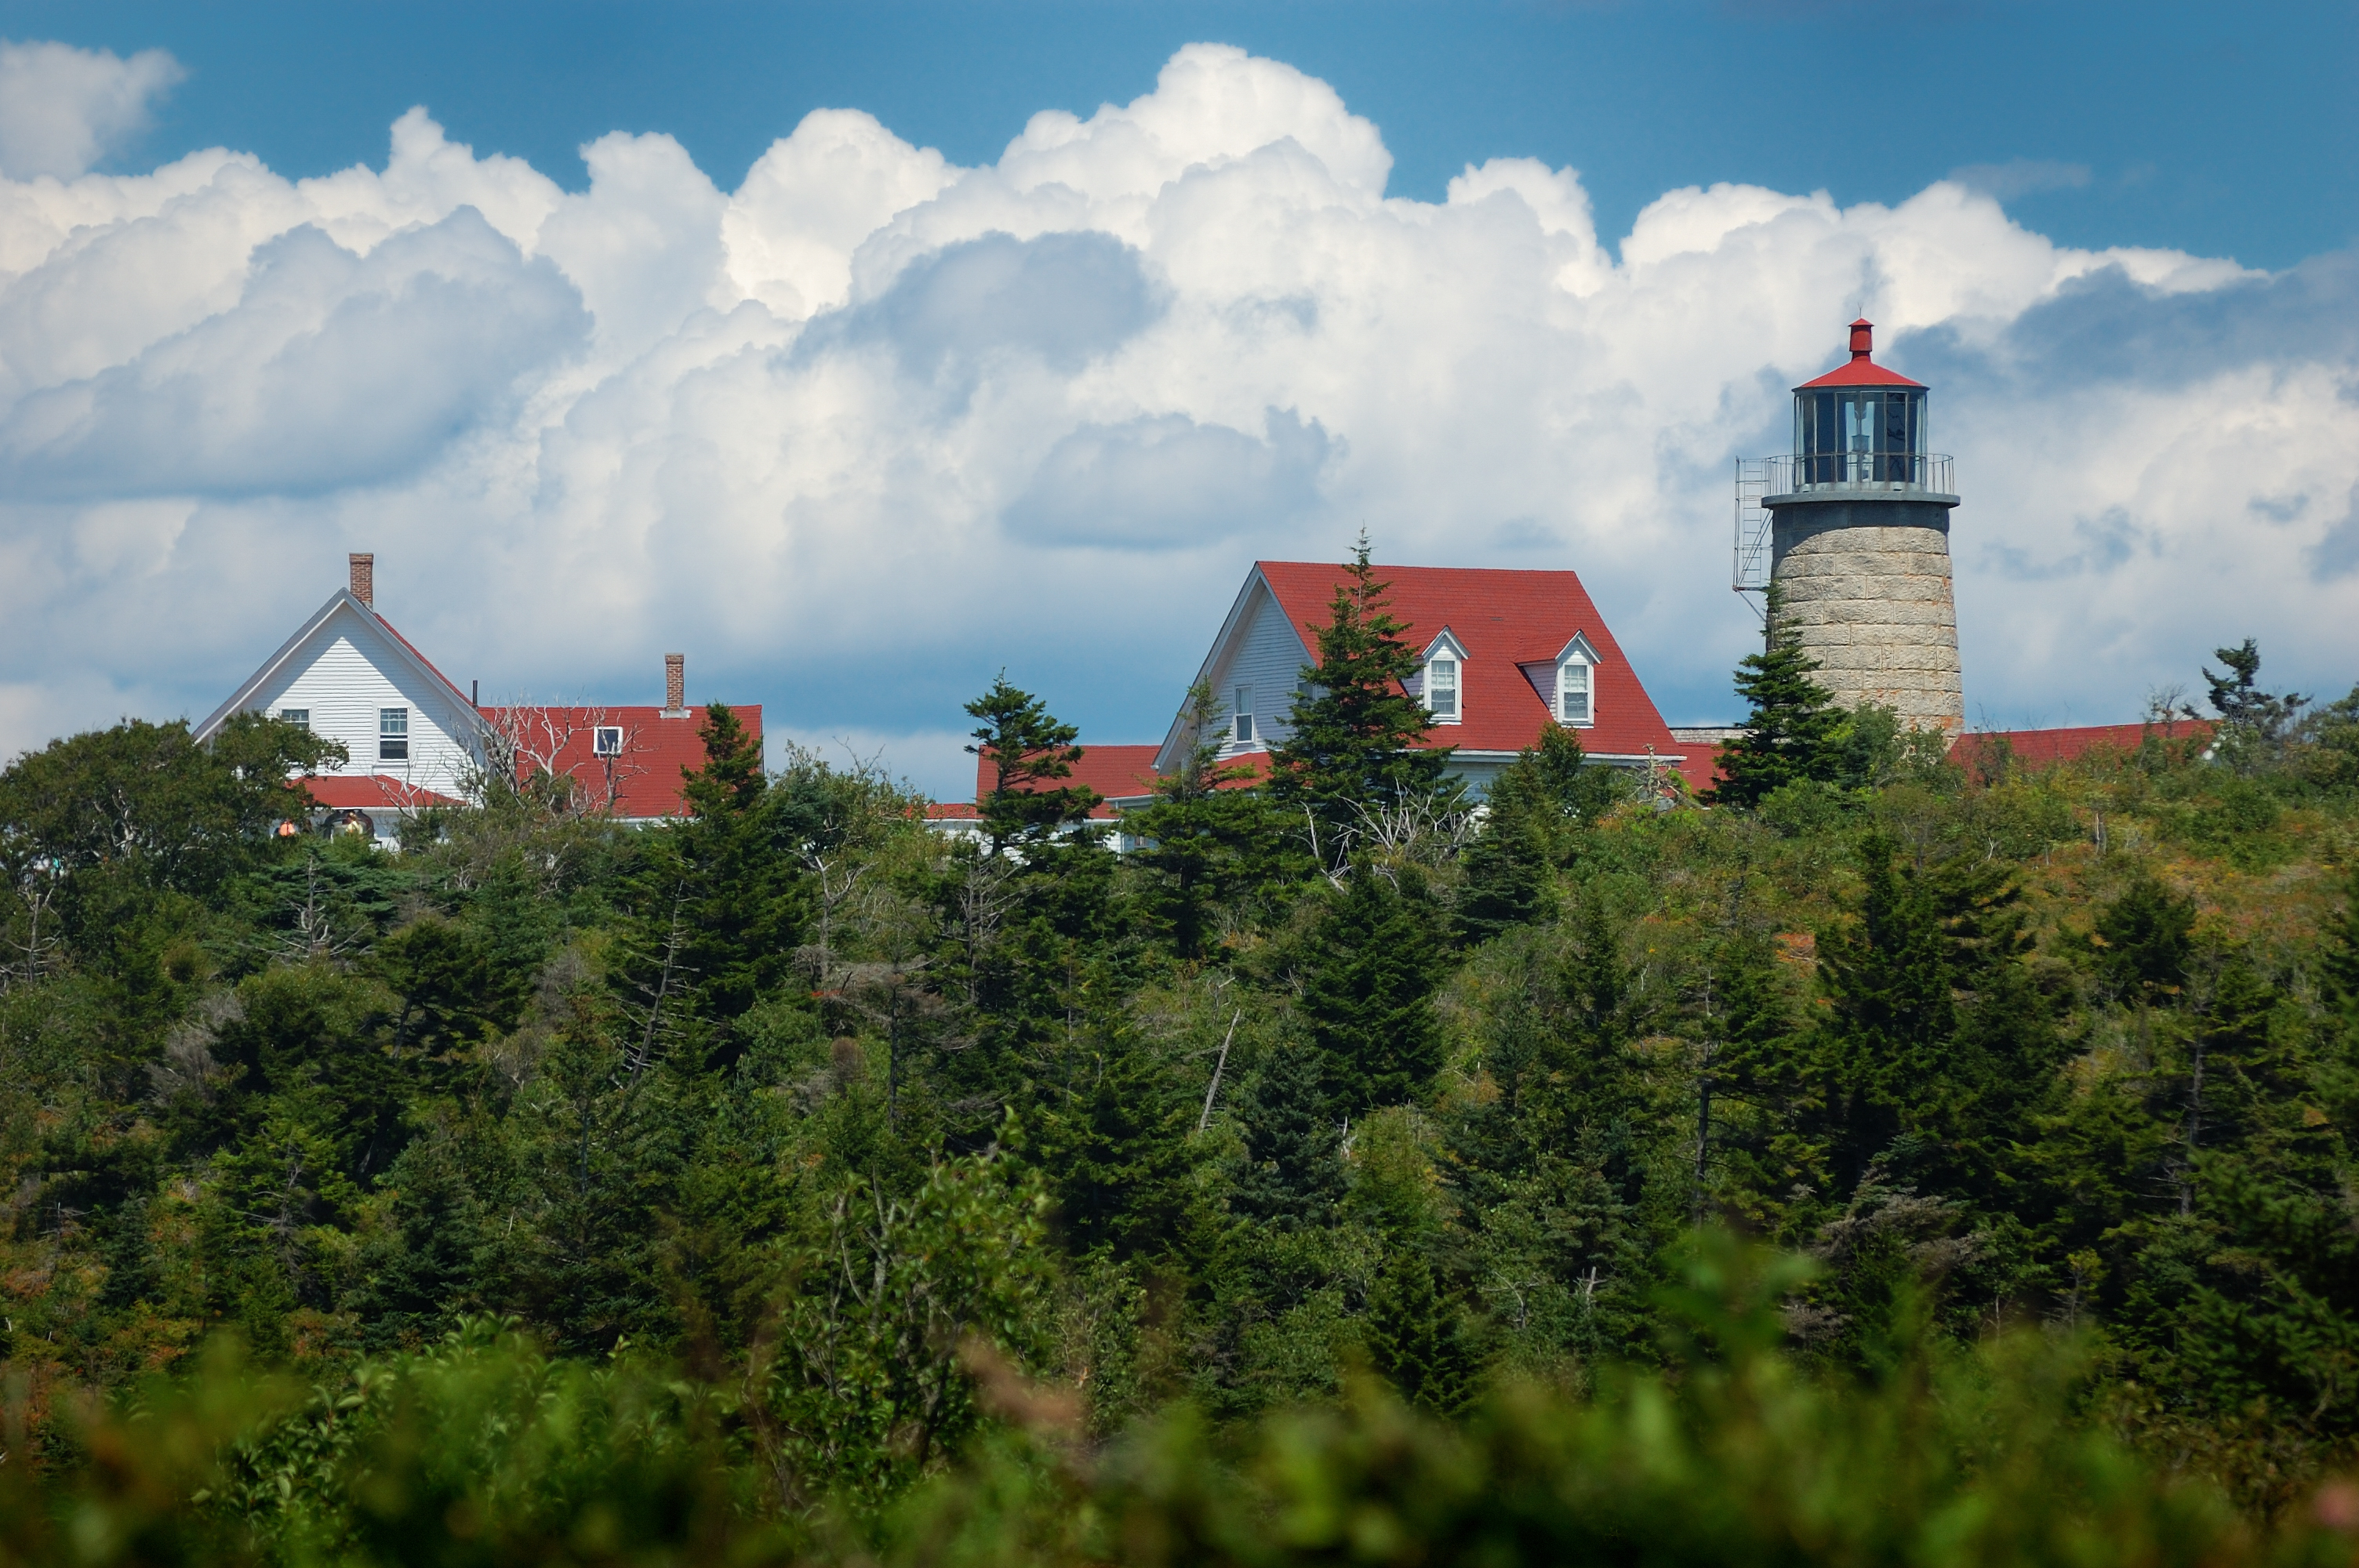 monhegan online dating Online dating never been easier, just create a profile, check out your matches, send them a few messages and when meet up for a date.